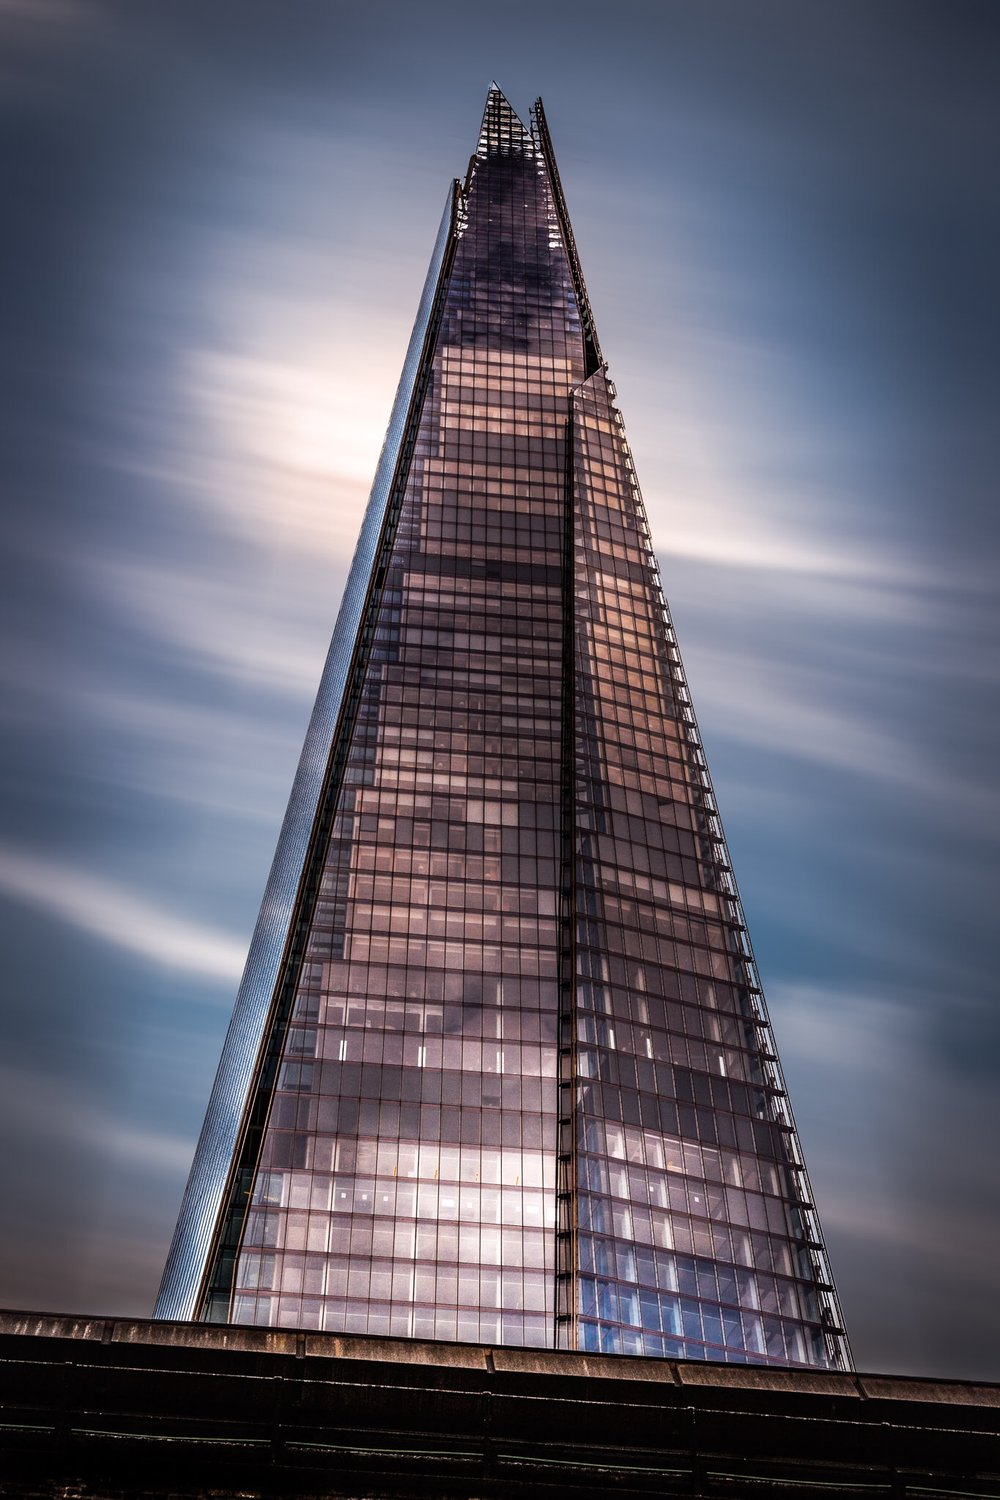 Picture of The Shard in London